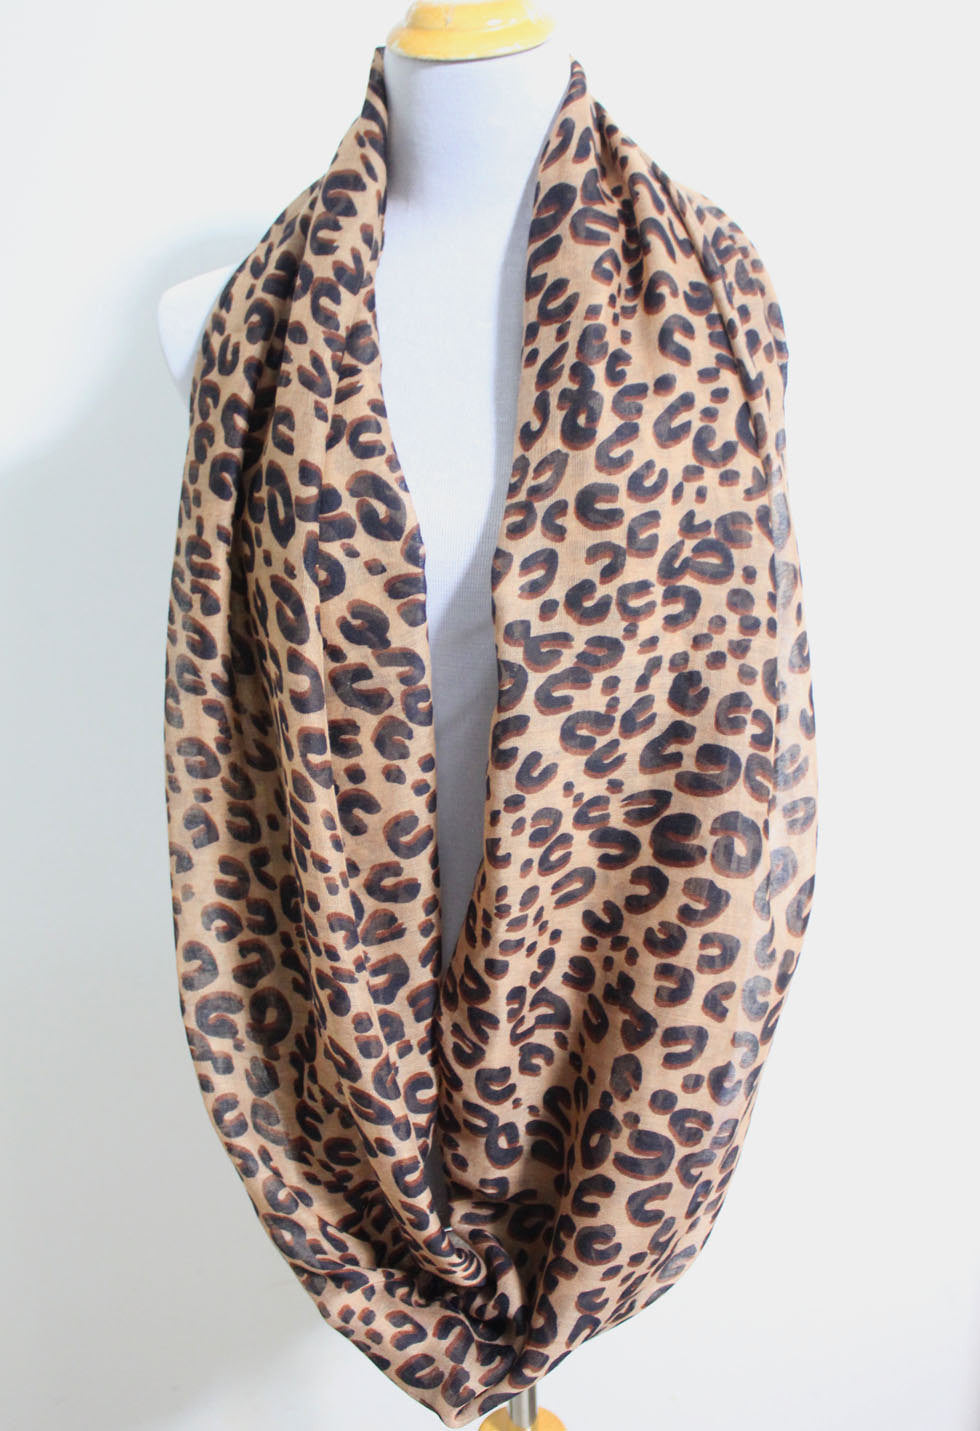 Leopard Infinity Scarf - Bean Concept - Etsy